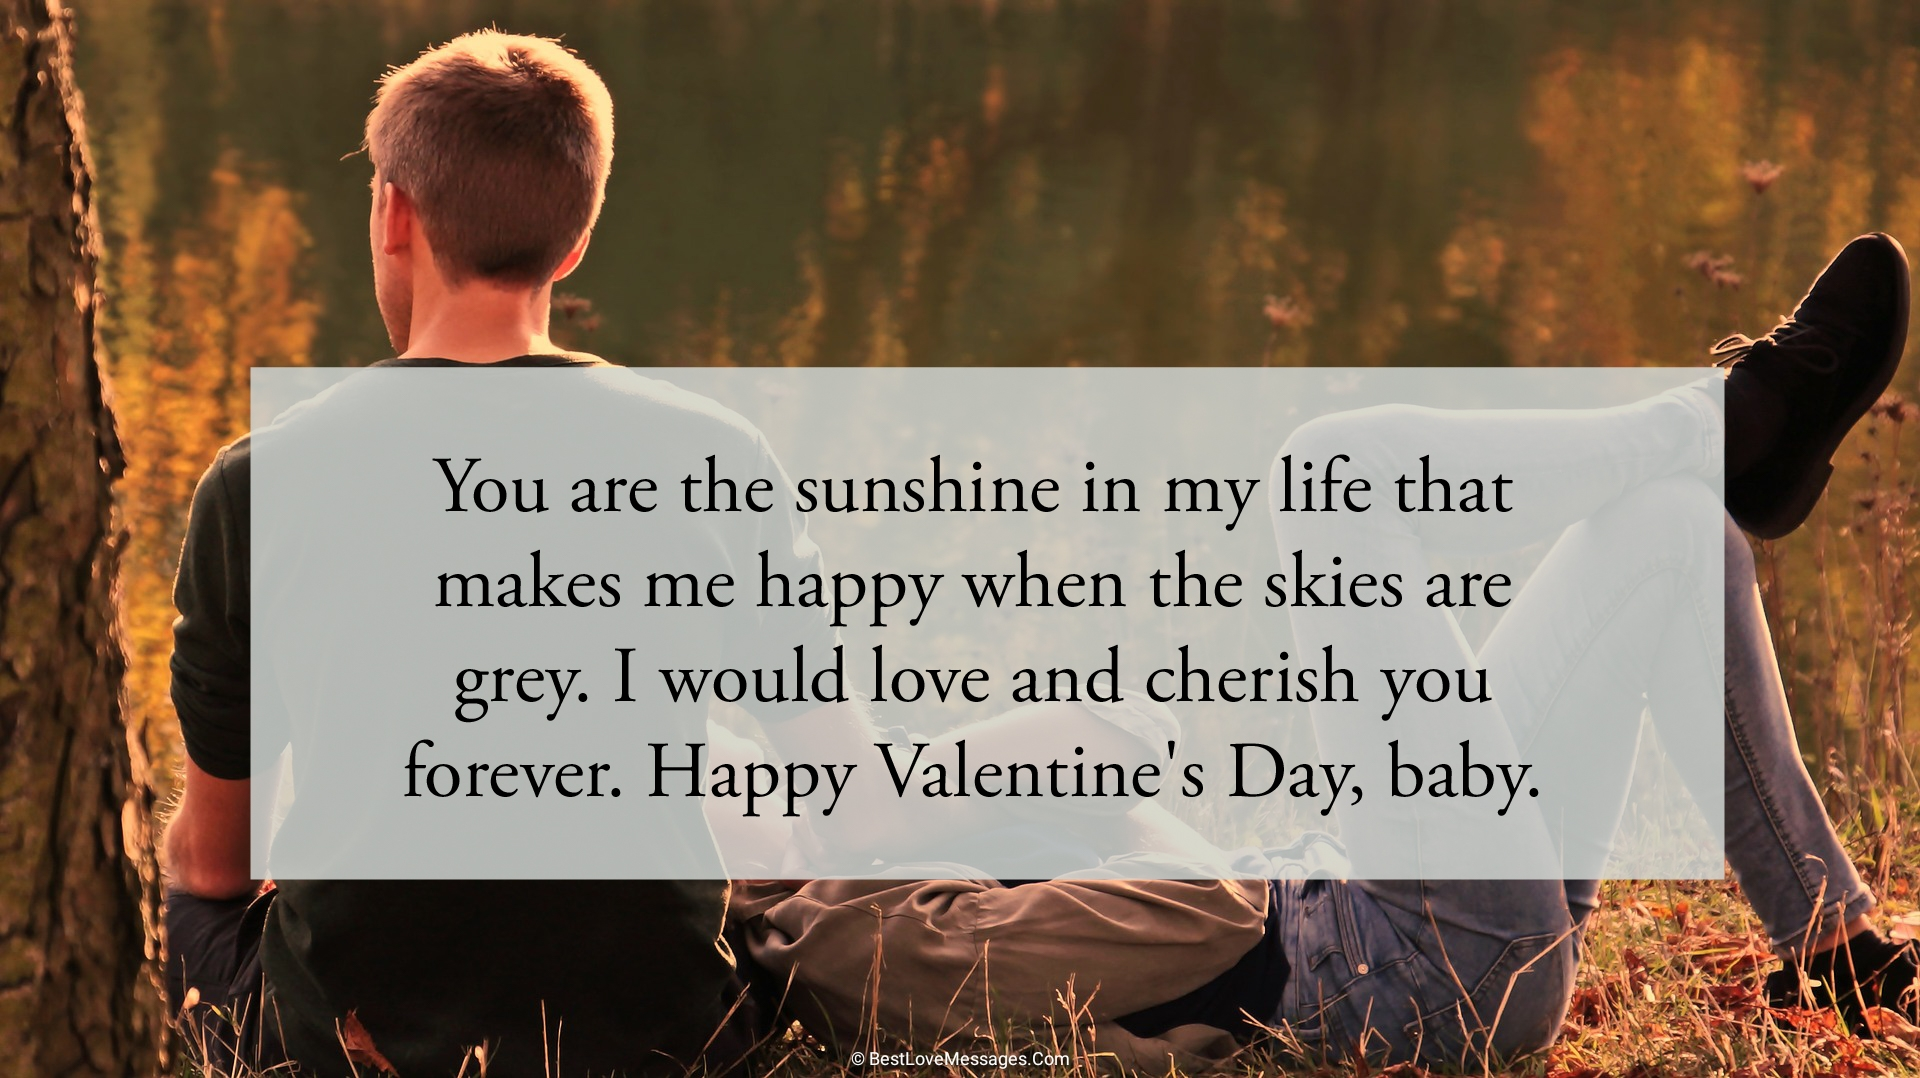 Romantic Valentine's Day Messages of Love